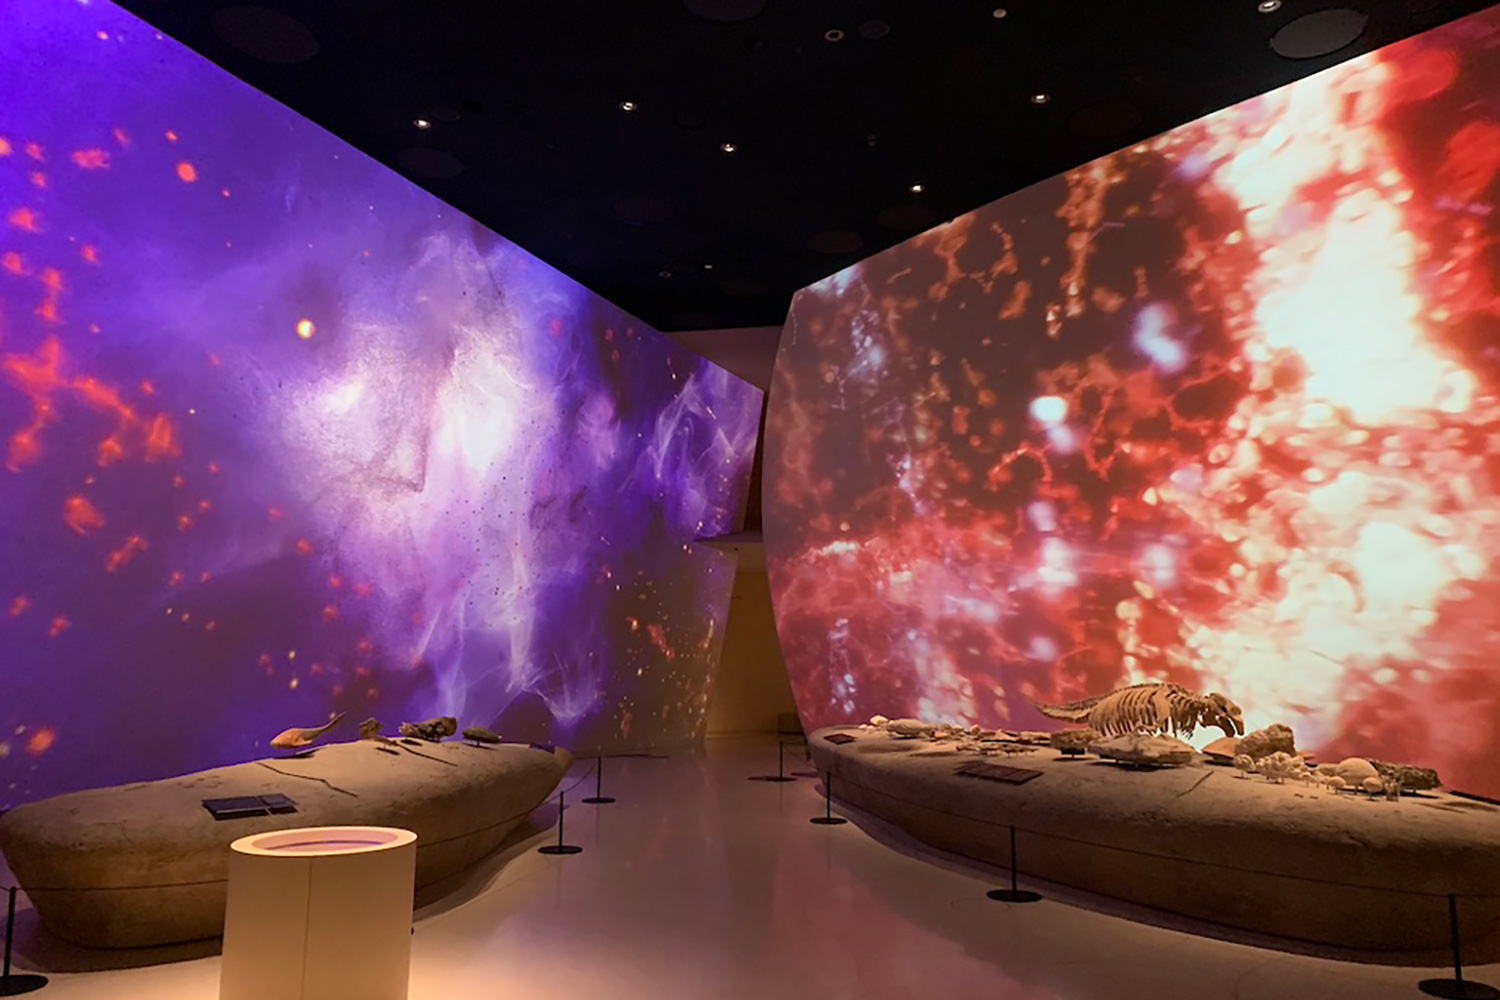 The National Museum of Qatar. WSDG was contracted to create a 3-D acoustic model of the space and make recommendations regarding appropriate speaker usage and placement. High-end room.